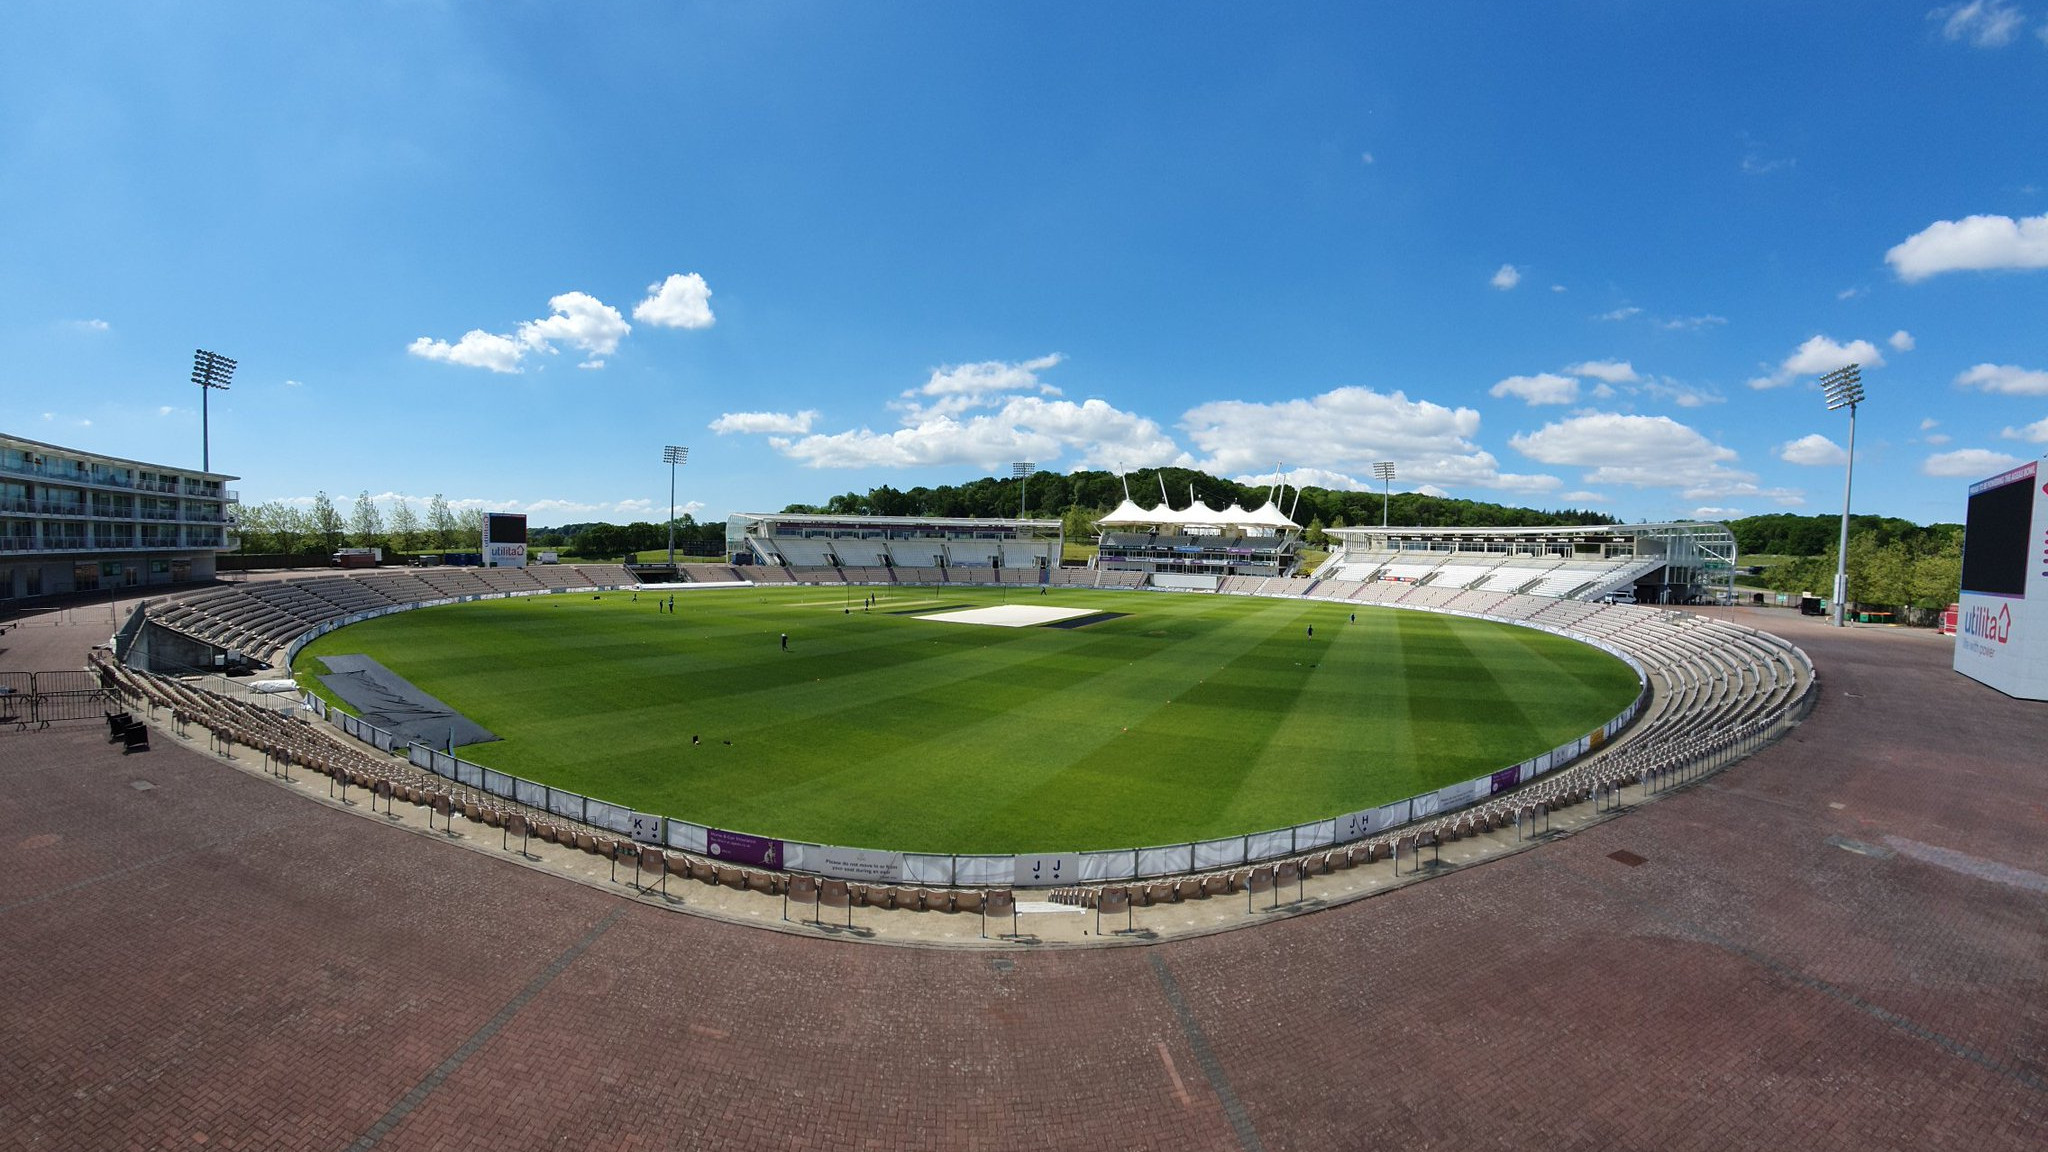 """""""Perfect setup for training,"""" BCCI posts picture of Ageas Bowl as Team India gets set for first training session"""